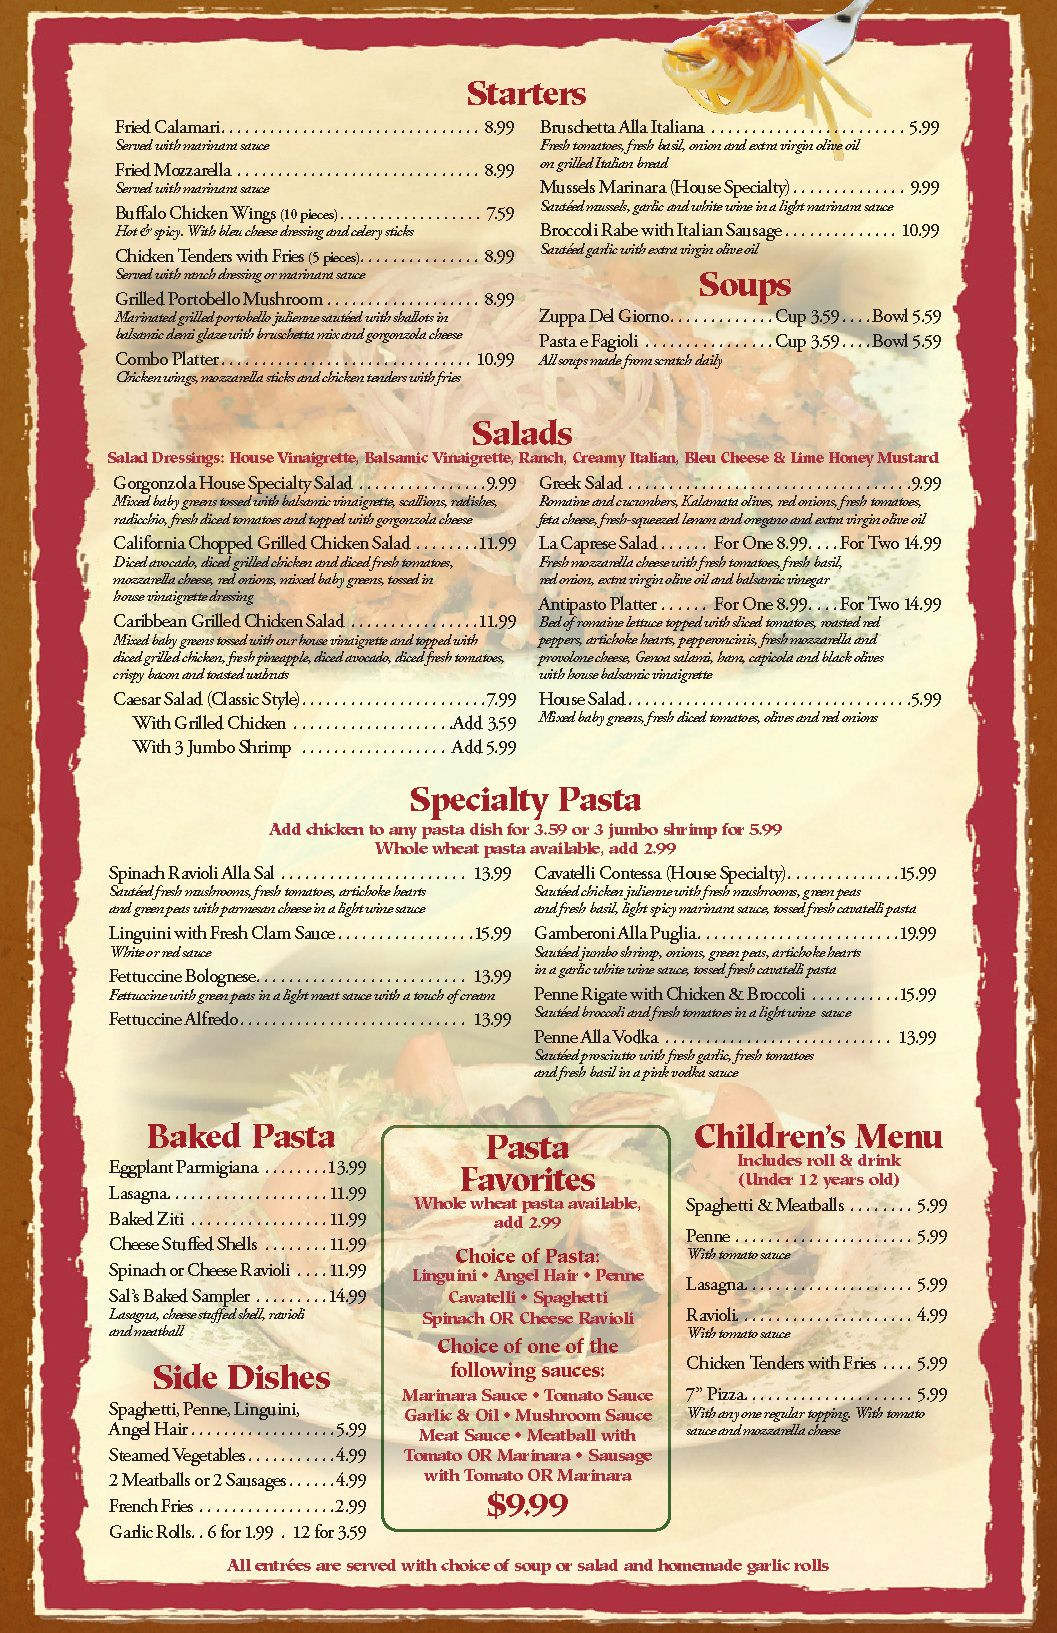 free blank restaurant menu templates | restaurant menu templates